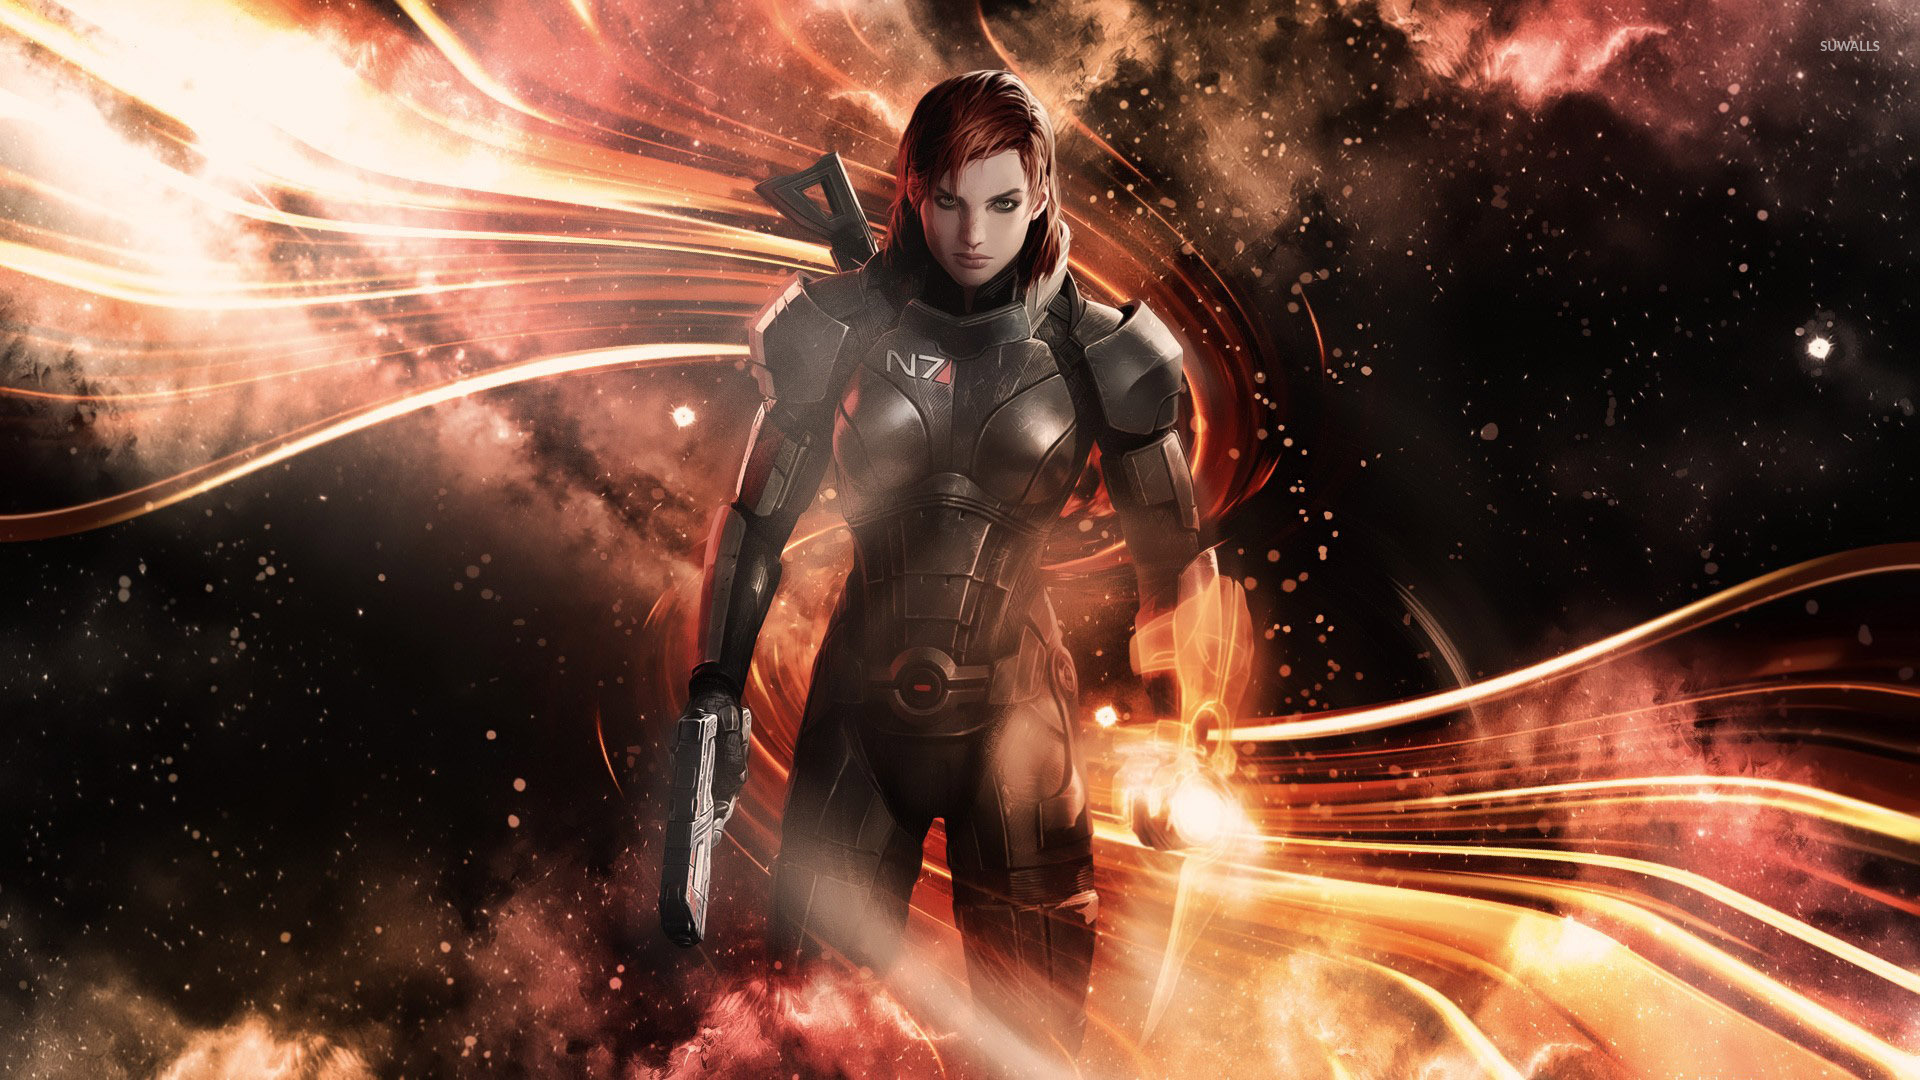 Commander Shepard Mass Effect 3 3 Wallpaper Game Wallpapers